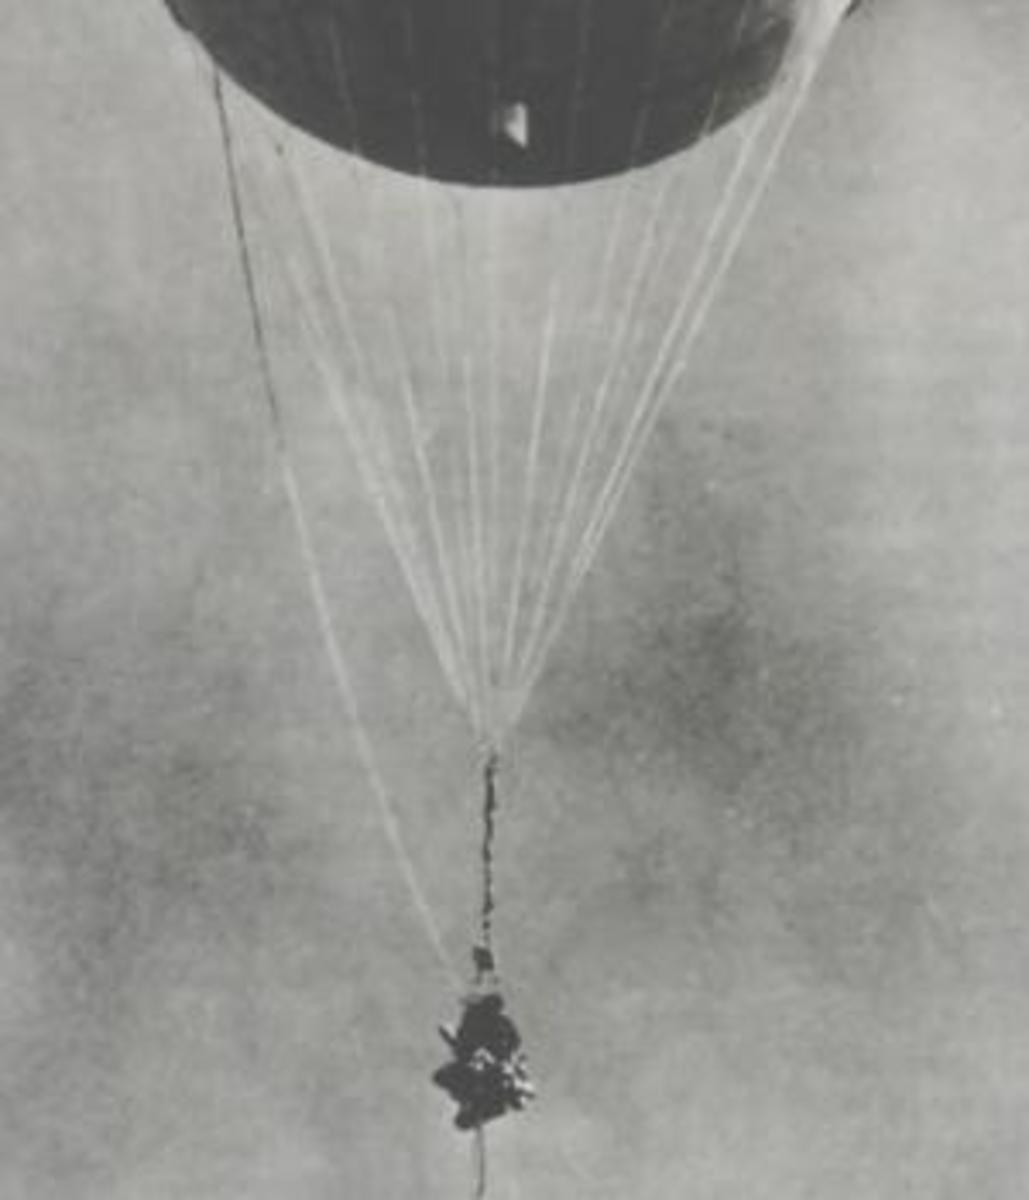 Japanese fire balloon reinflated at Moffett Field, California, after it had been shot down by a Navy aircraft January 10, 1945.